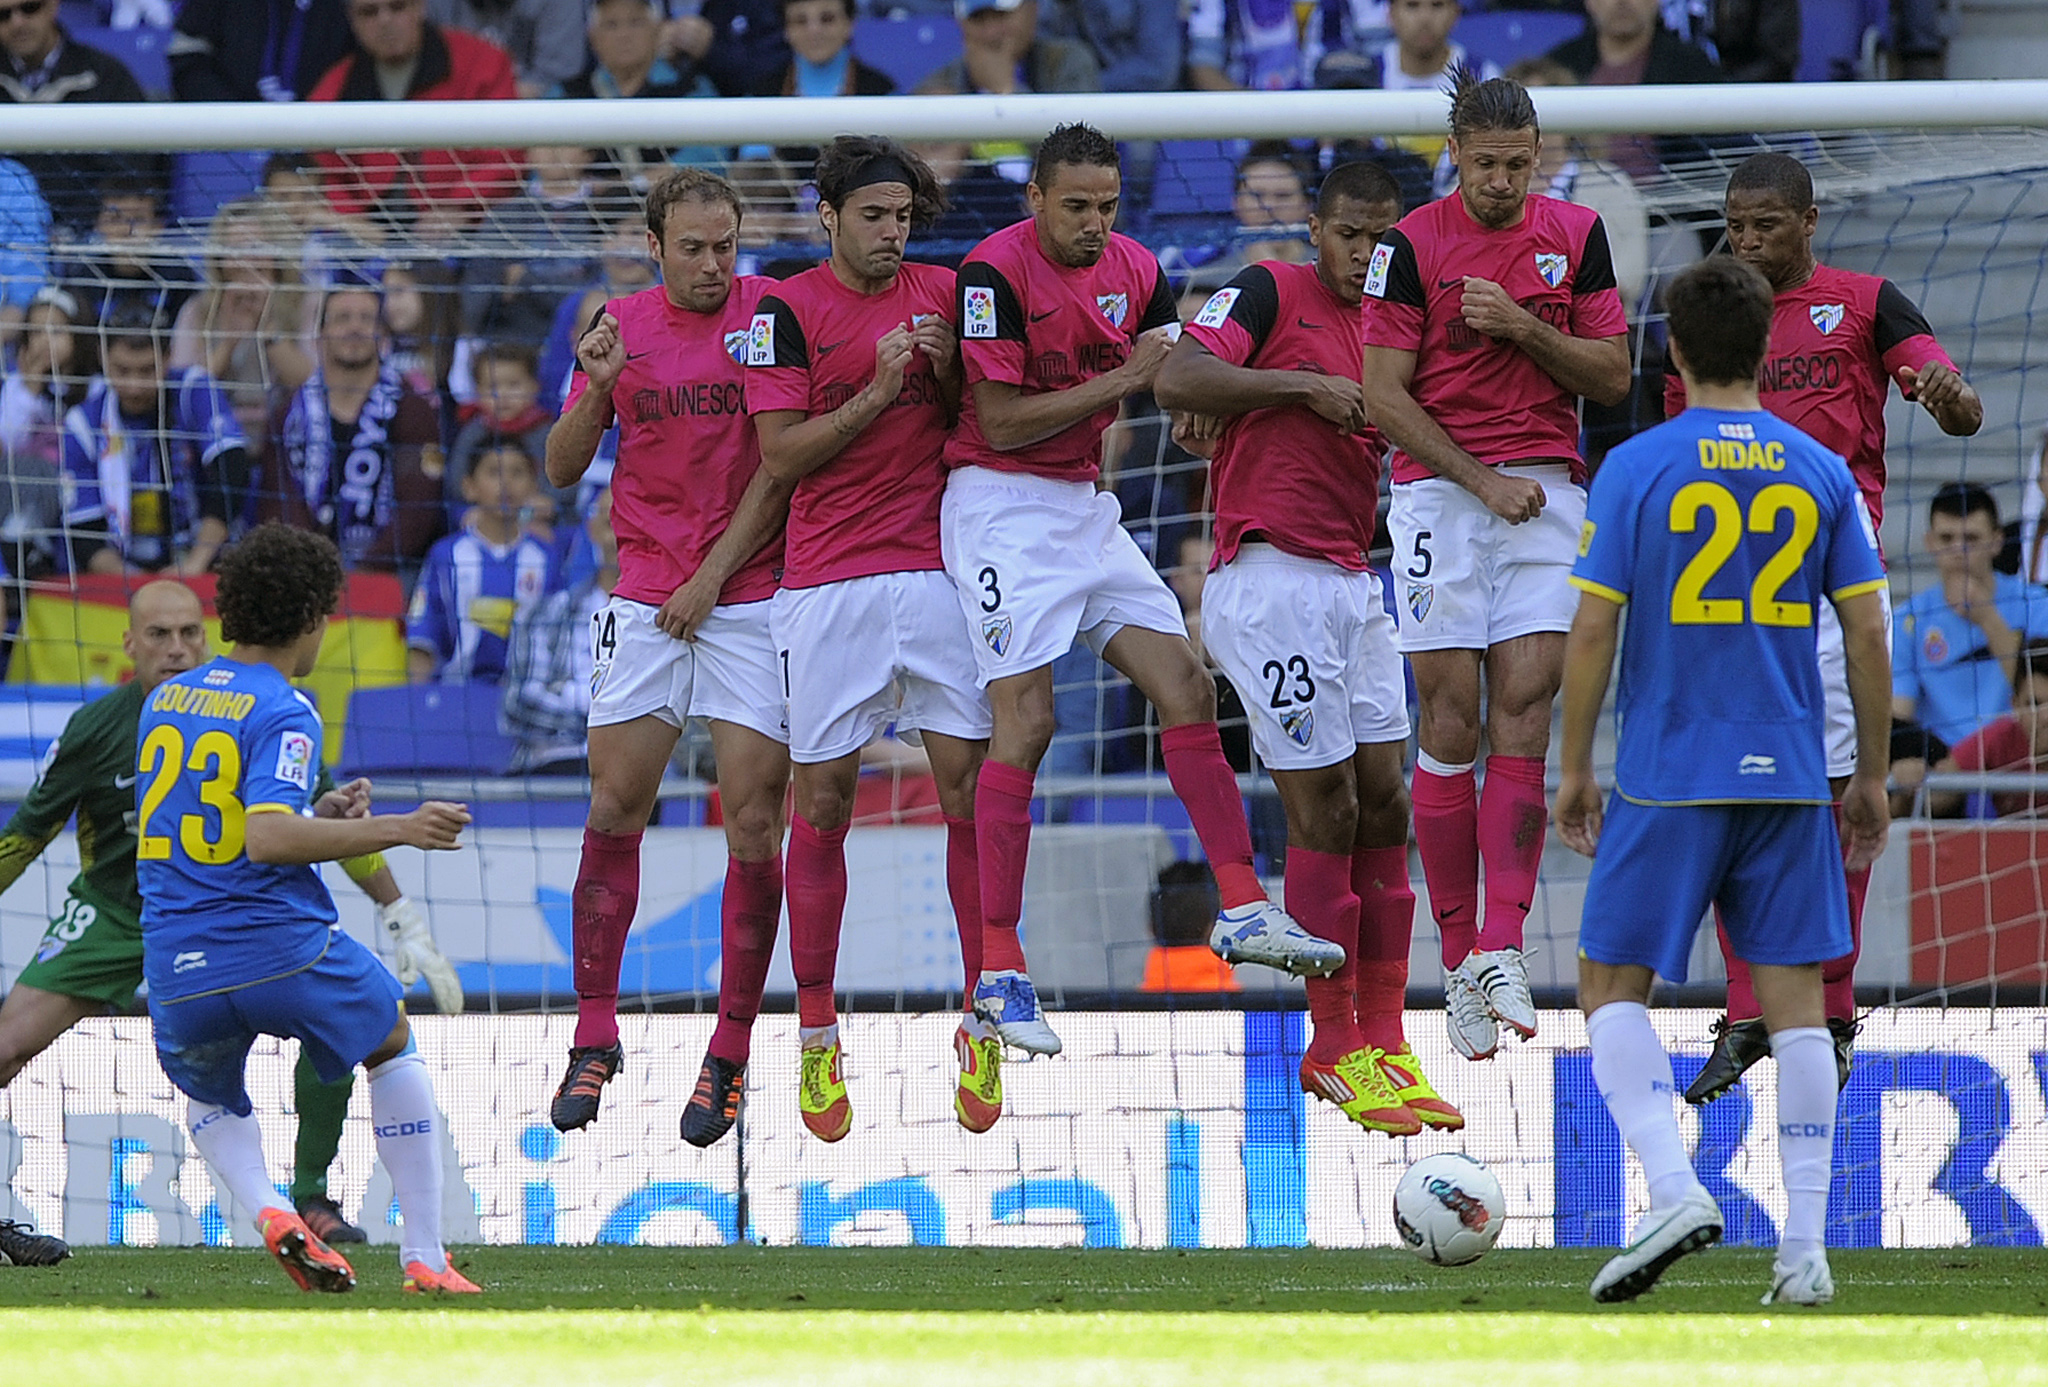 Coutinho scoring a free-kick against Malaga in 2012.